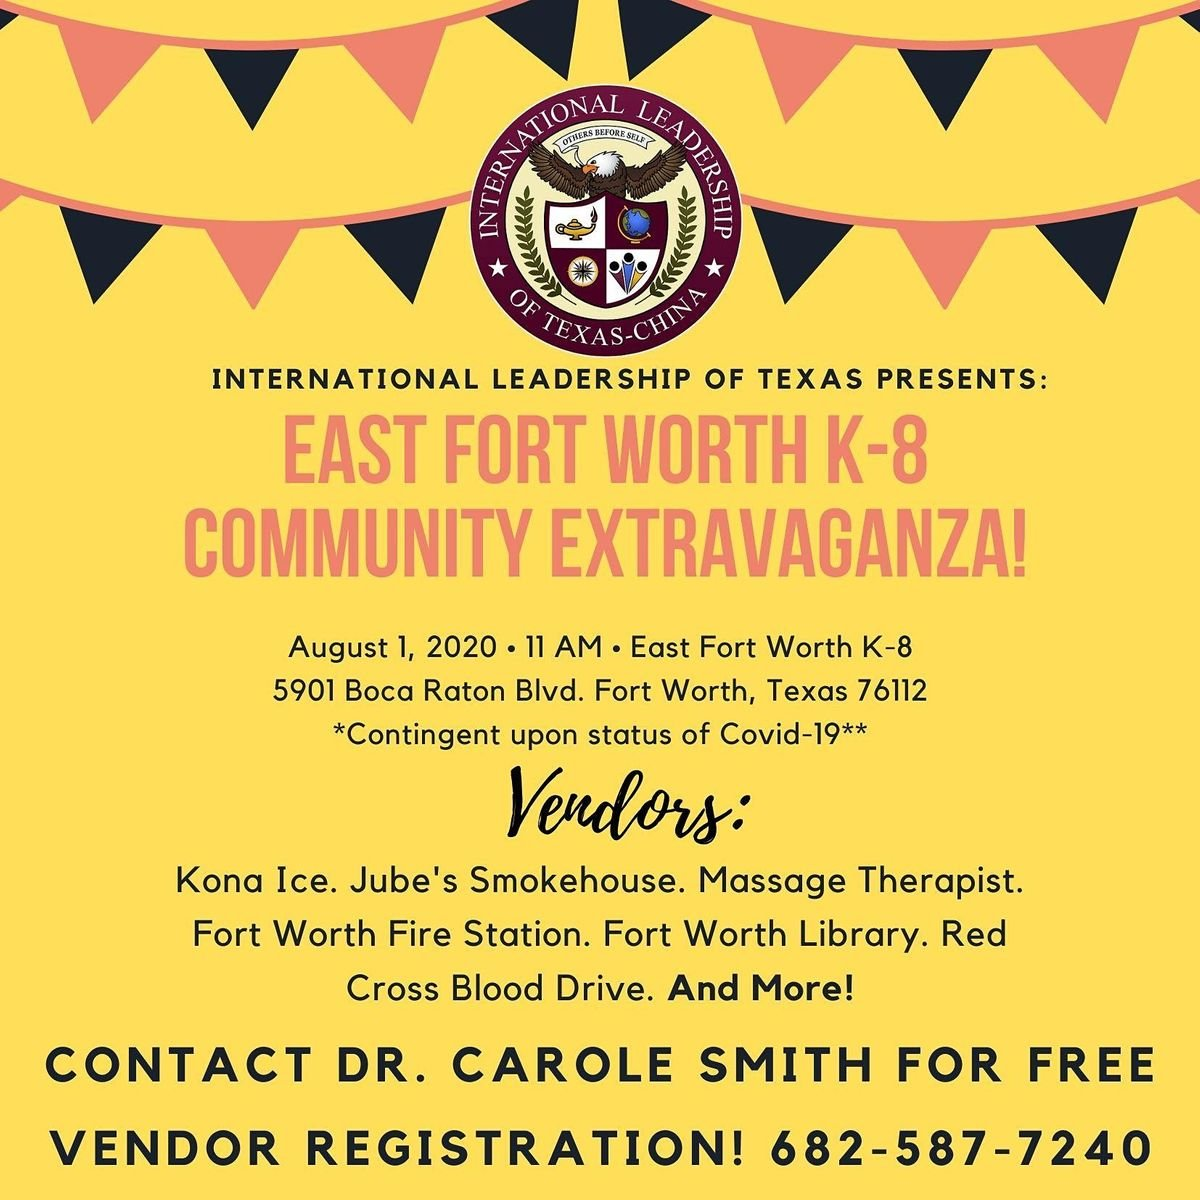 ILTexas East Fort Worth Community Extravaganza at 5901 Boca Raton Blvd, Fort  Worth